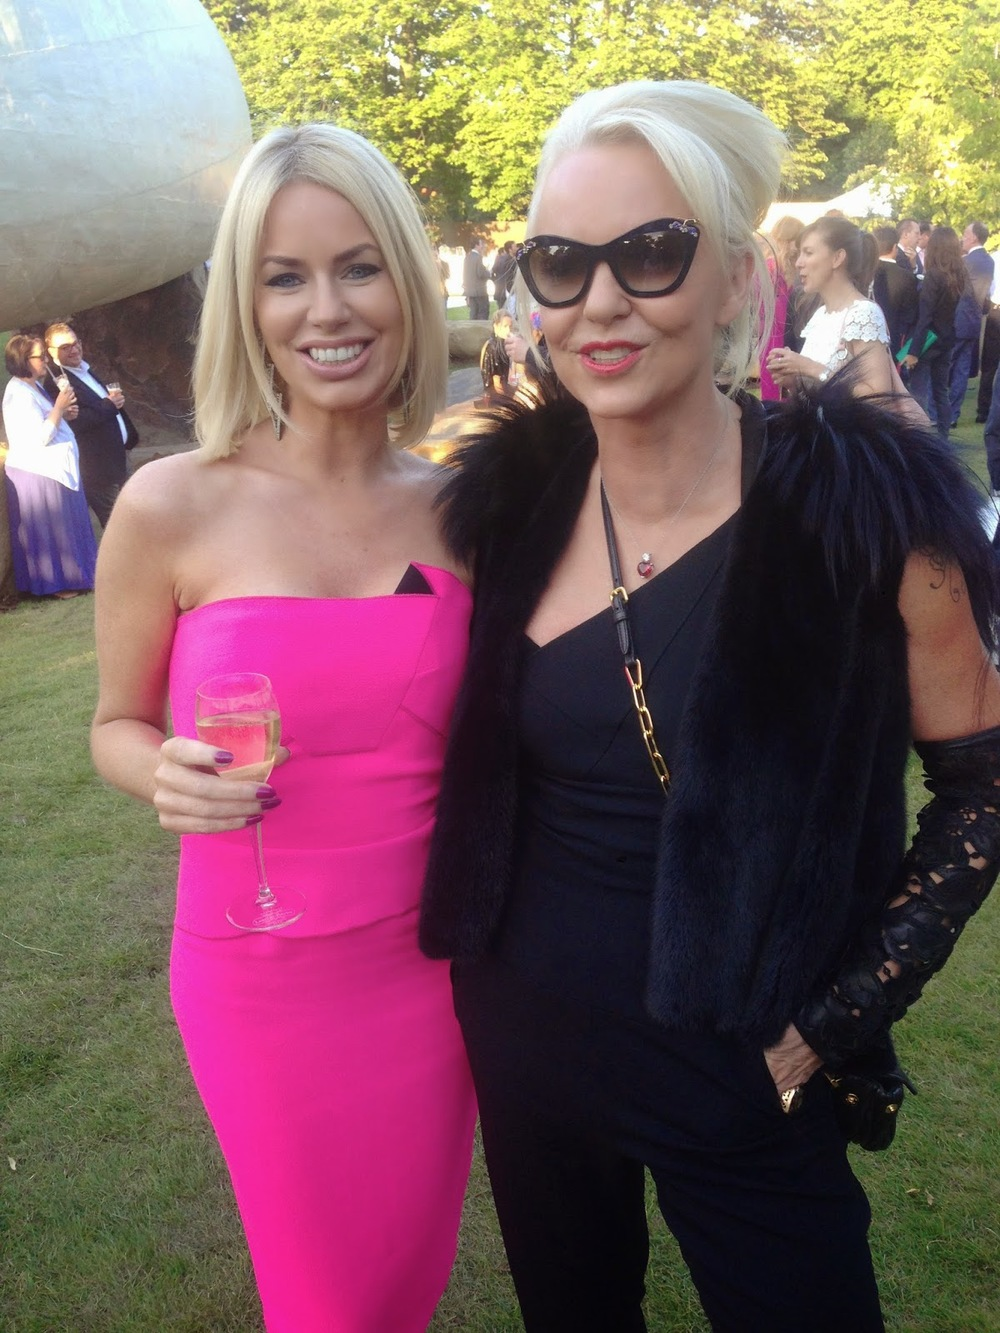 CAROLINE STANBURY AND AMANDA ELIASCH SERPENTINE PARTY